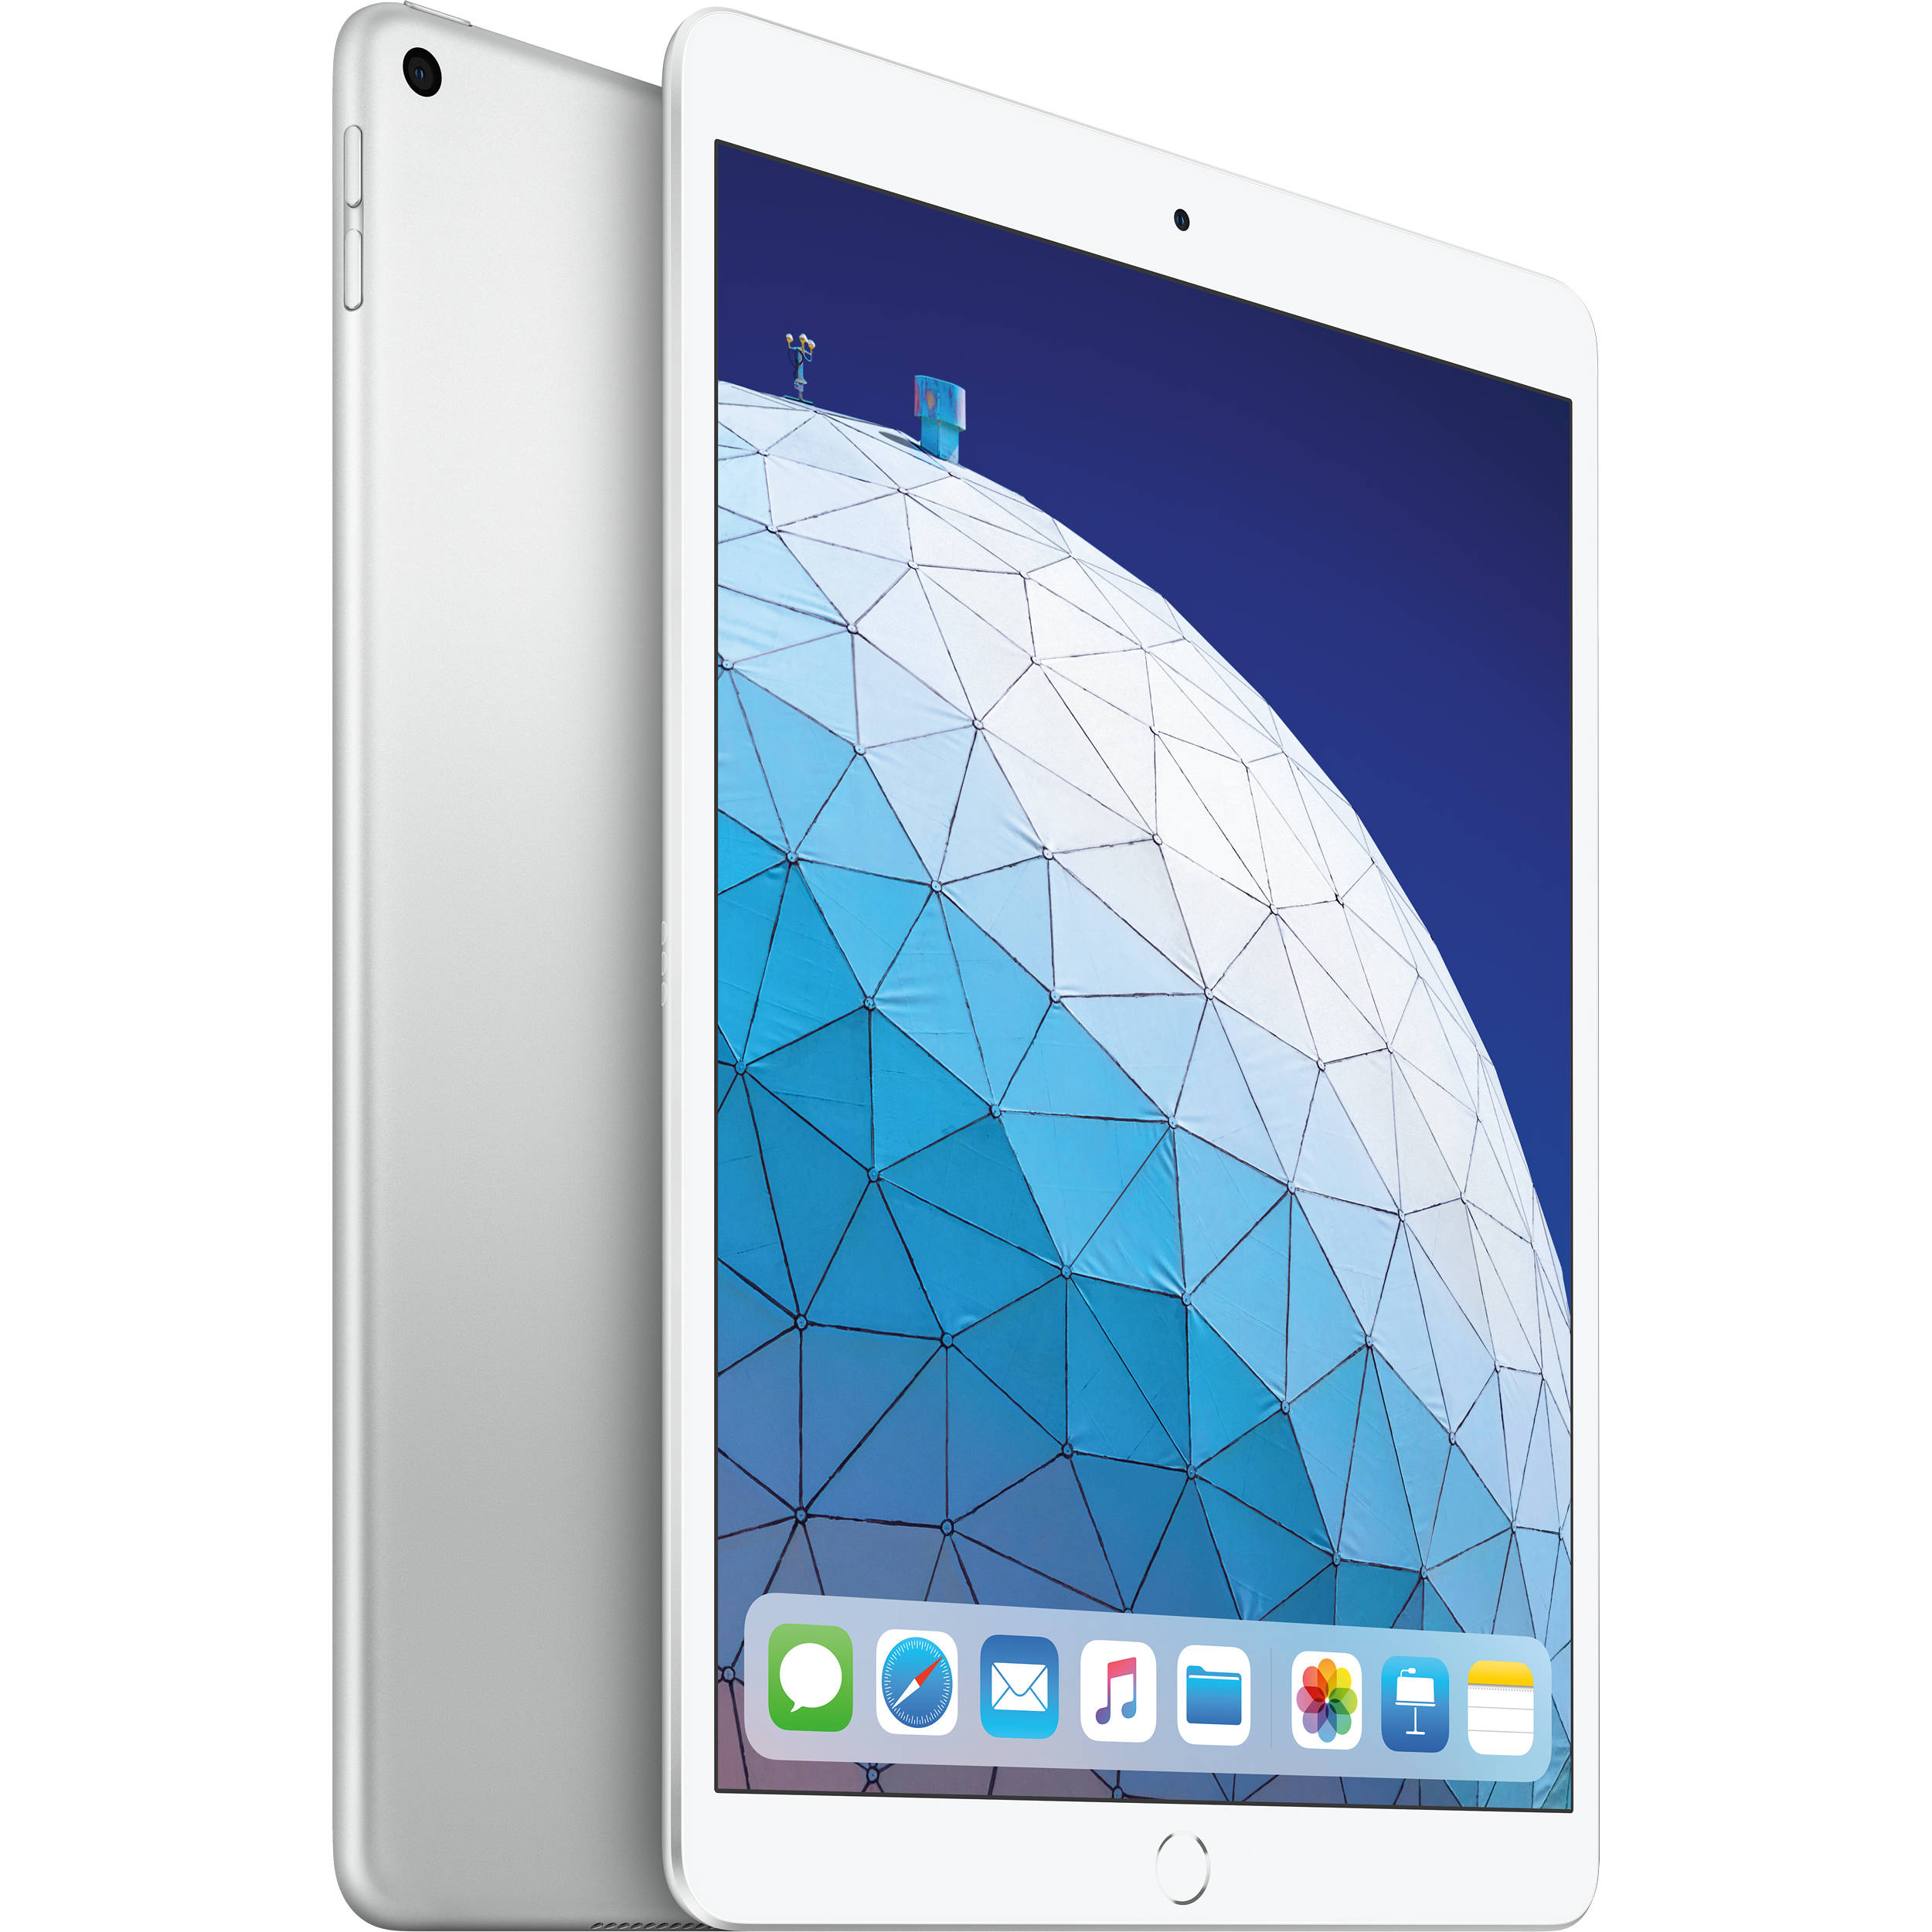 """Image of Apple iPad Air (2019) 10.5"""" MUUR2 256GB WiFi with Tempered Glass Screen Protector and Folding Case (Black) - Silver (with 1 year official Apple Warranty)"""